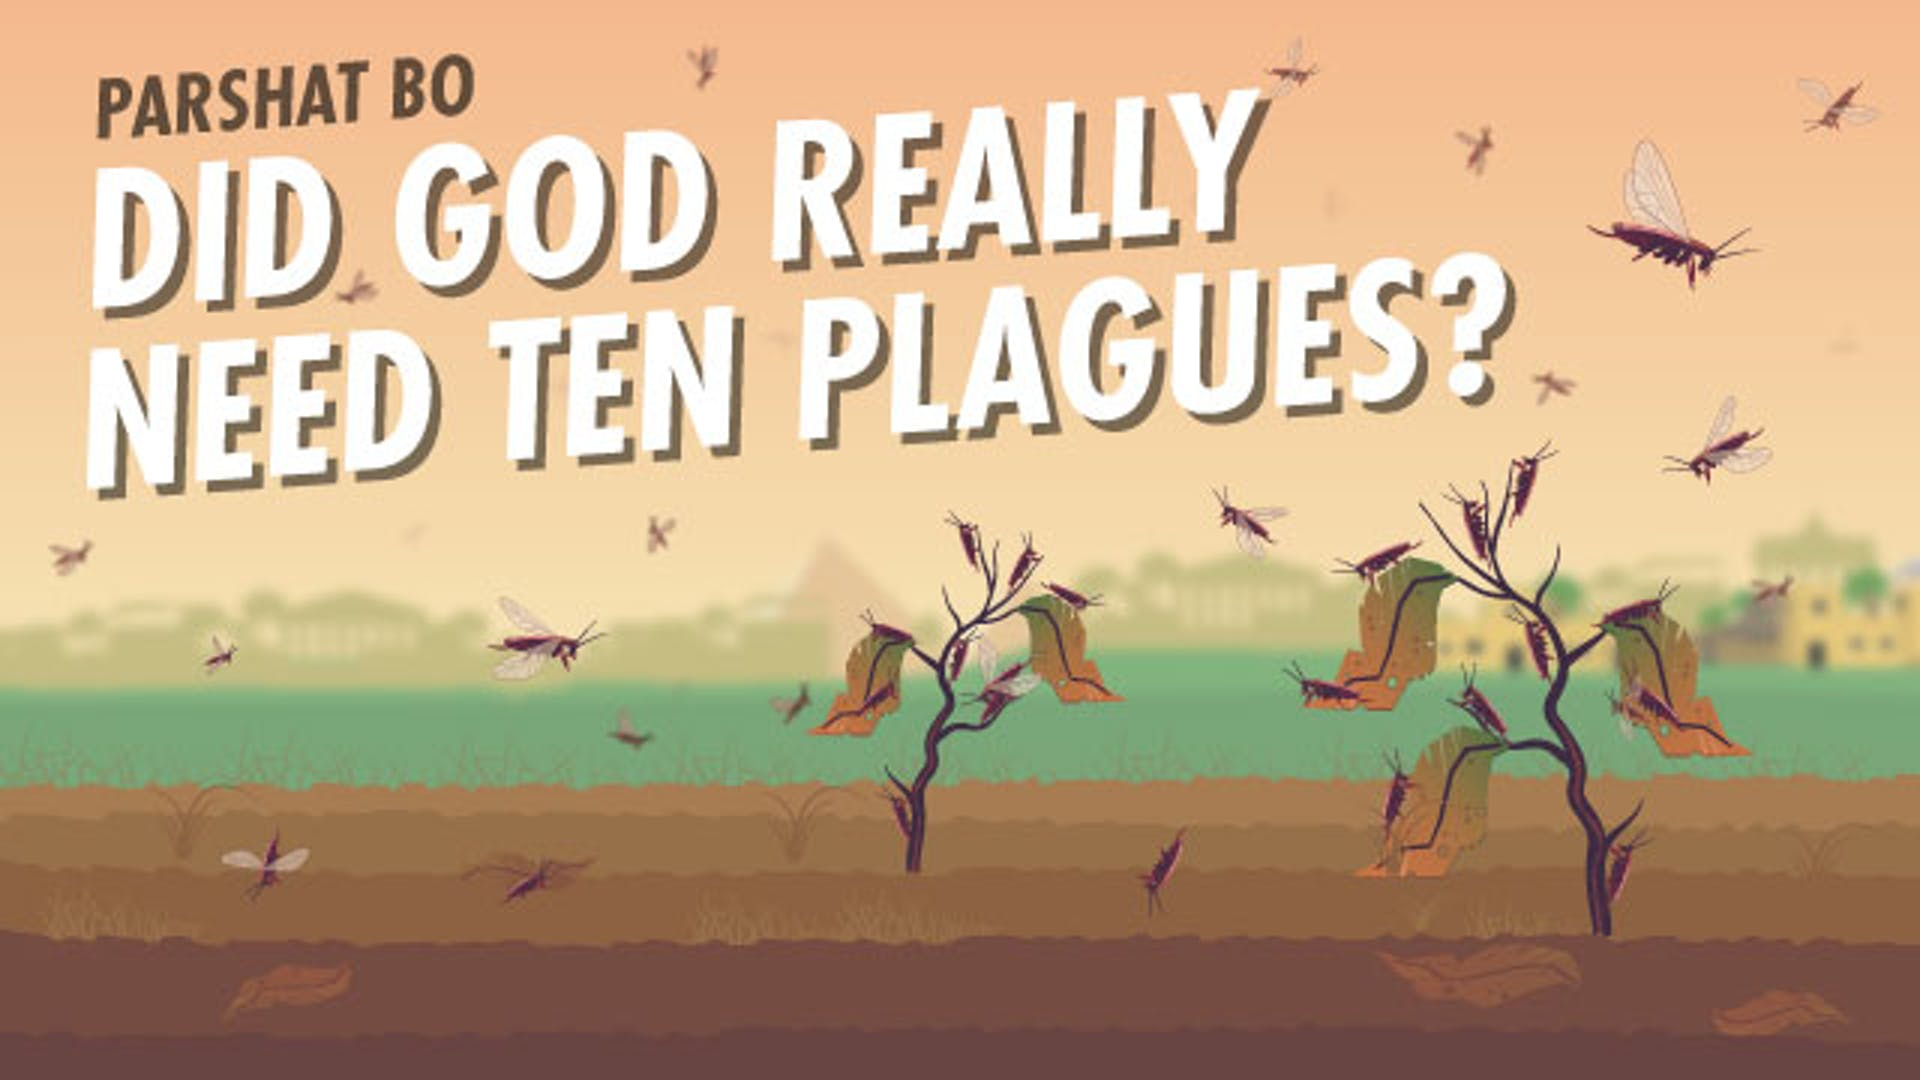 Why did God send ten plagues to Egypt